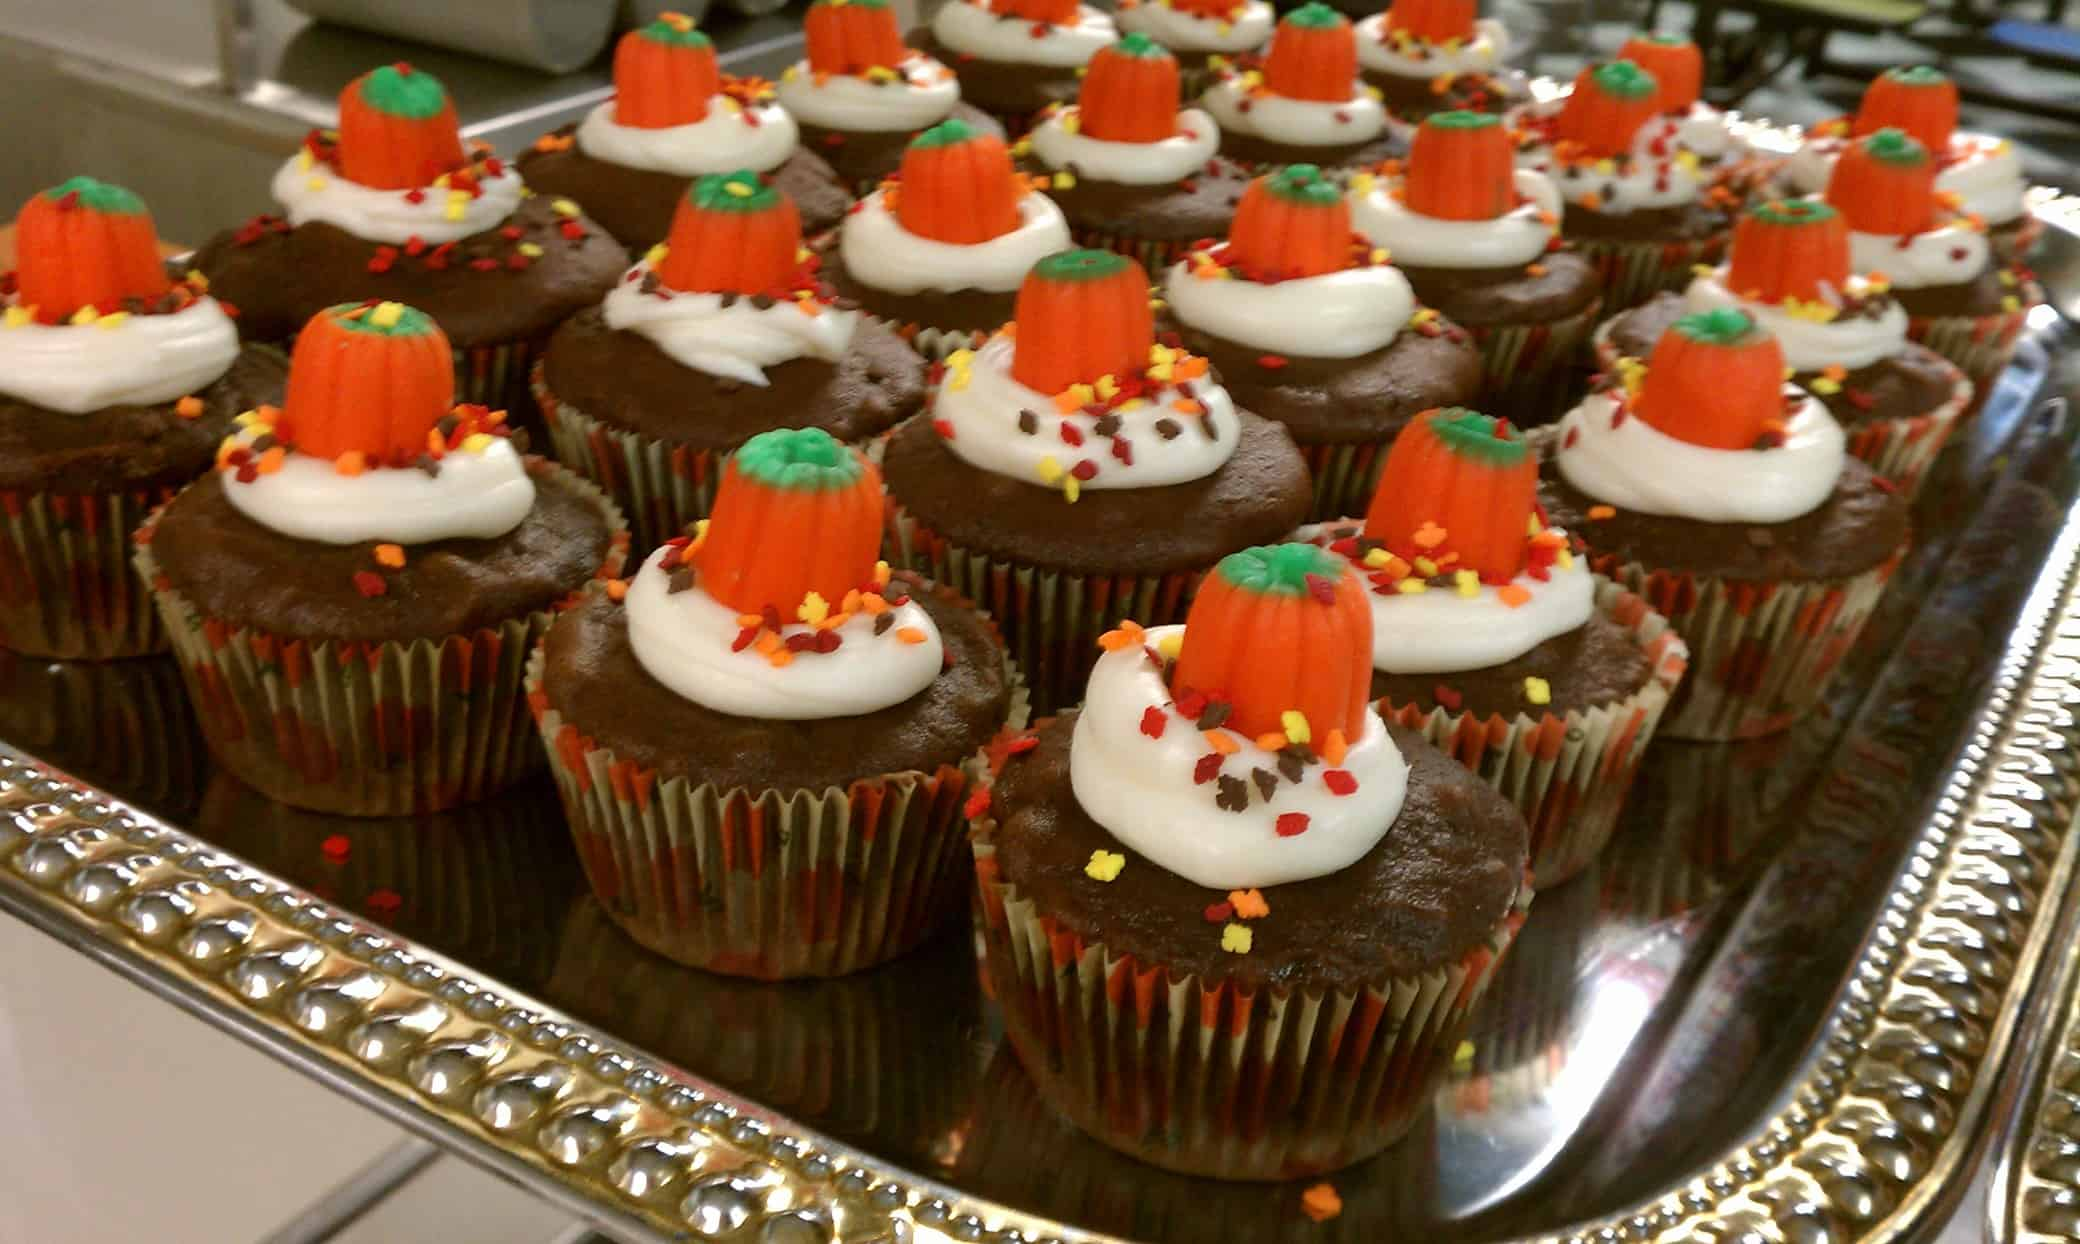 Delicious Dark Chocolate Cupcakes with Candied Pumpkins